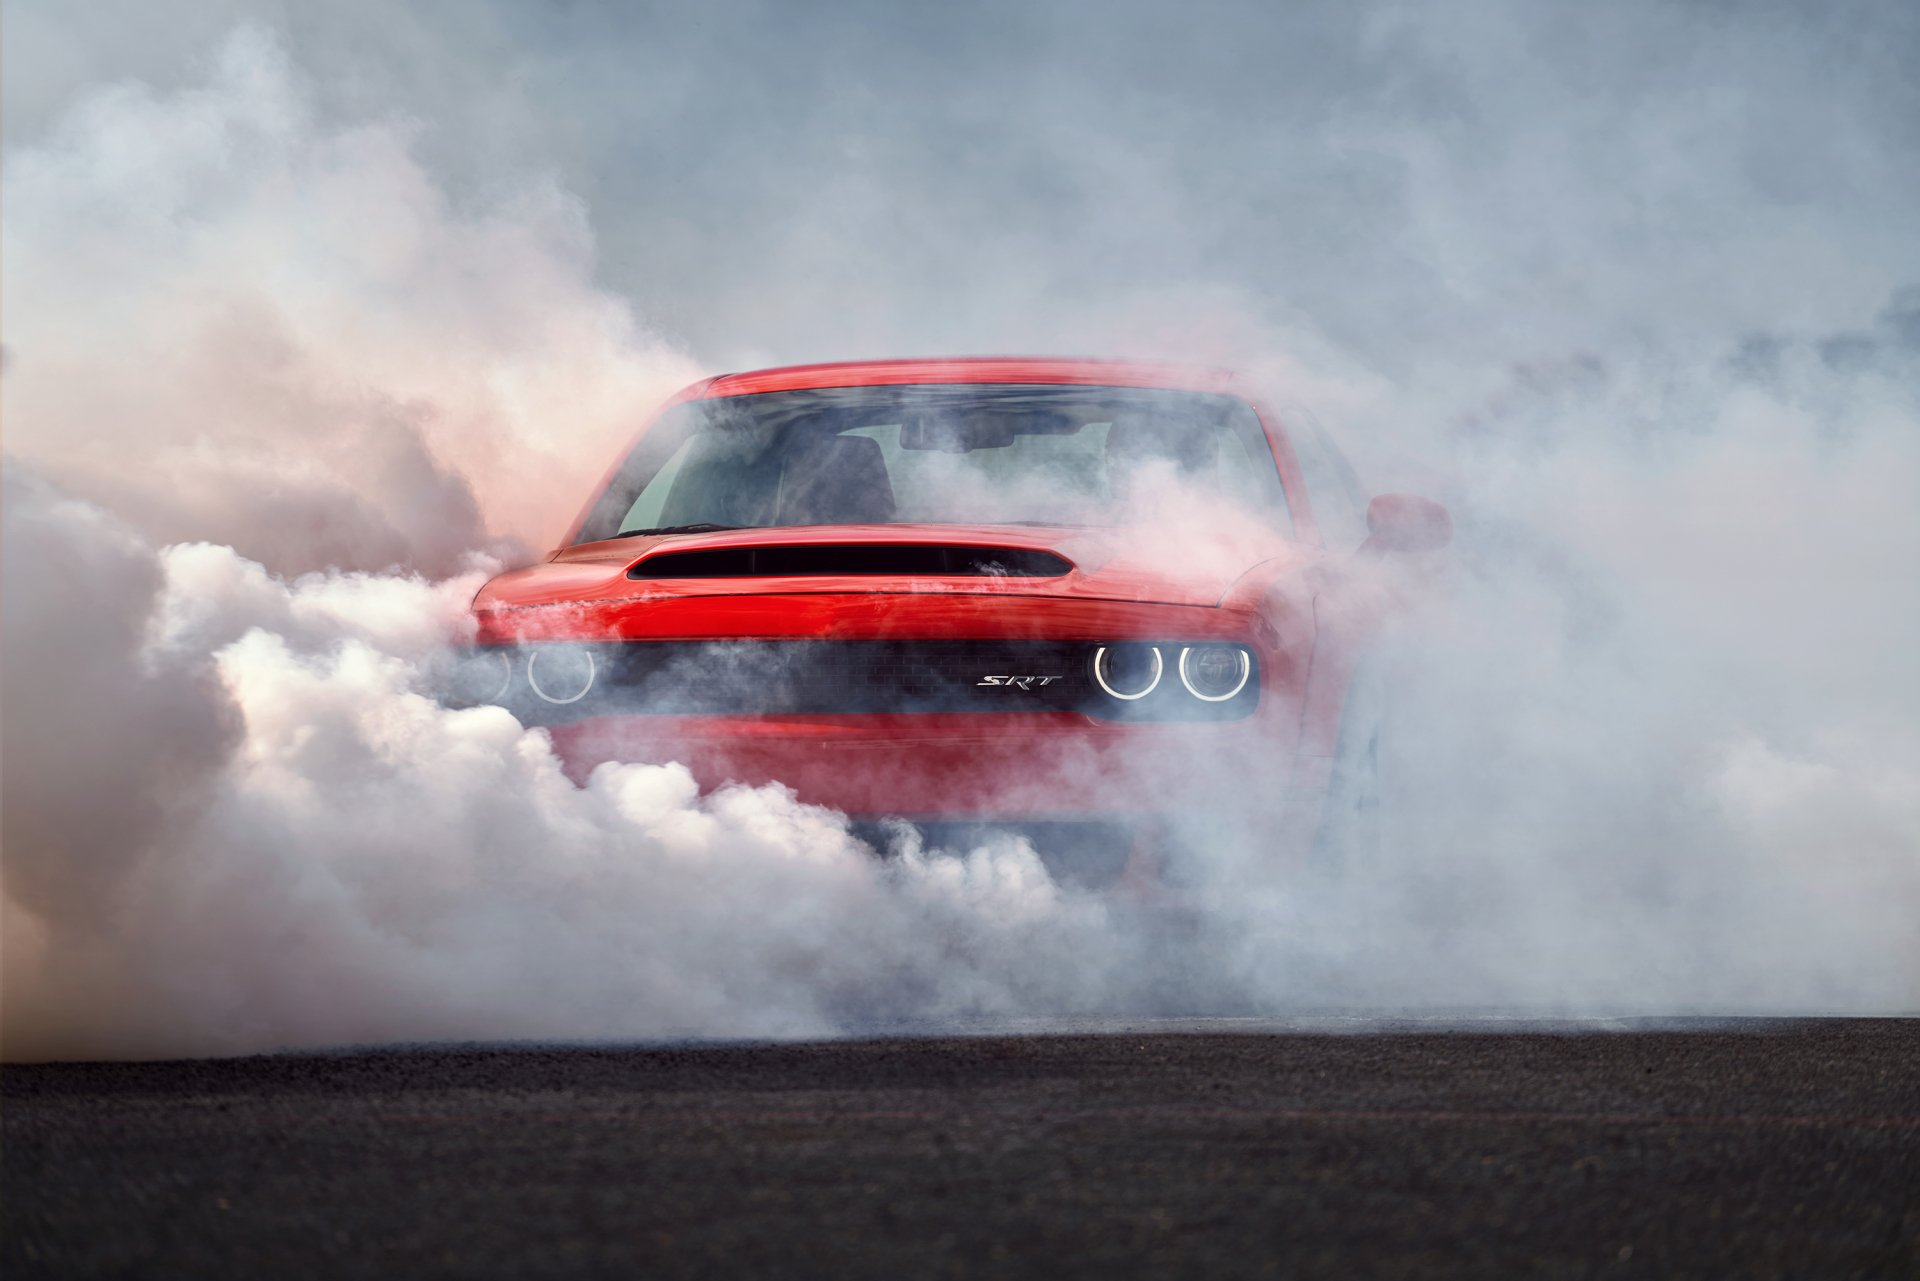 Vehicles - Dodge Challenger SRT Demon  Vehicle Car Muscle Car Mopar Dodge Challenger SRT Dodge Challenger Dodge Wallpaper